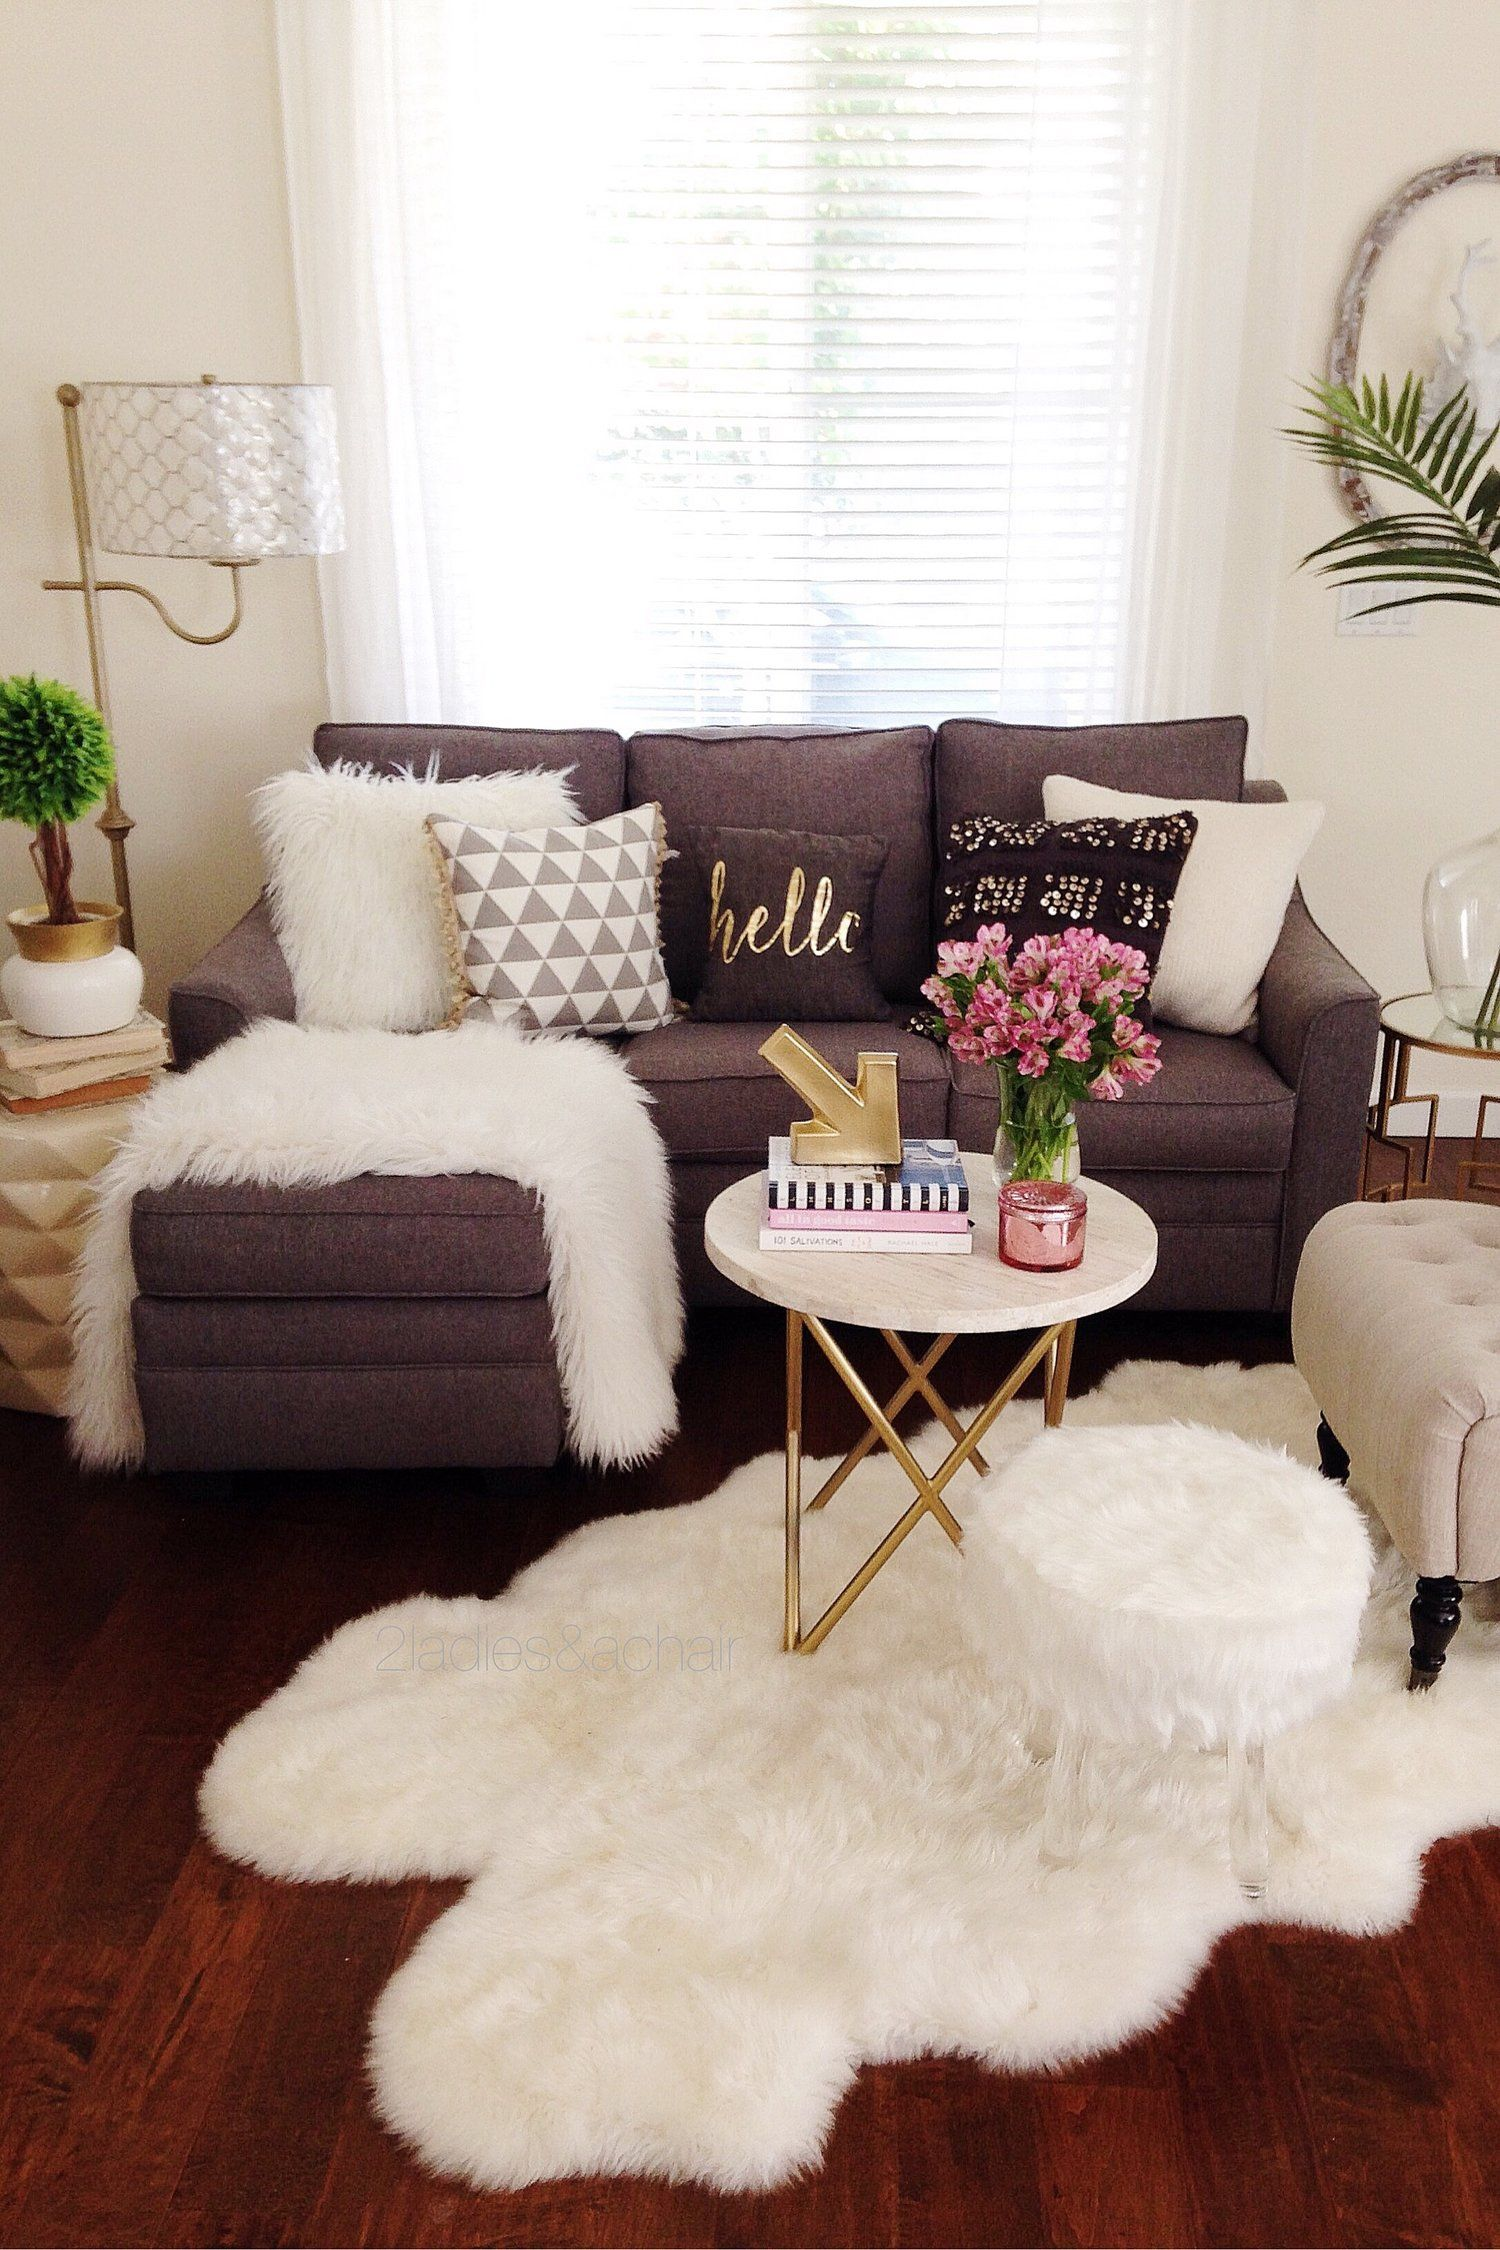 Decorating With Books 2 Ladies A Chair College Apartment Decor College Apartment Living Room Living Room Setup